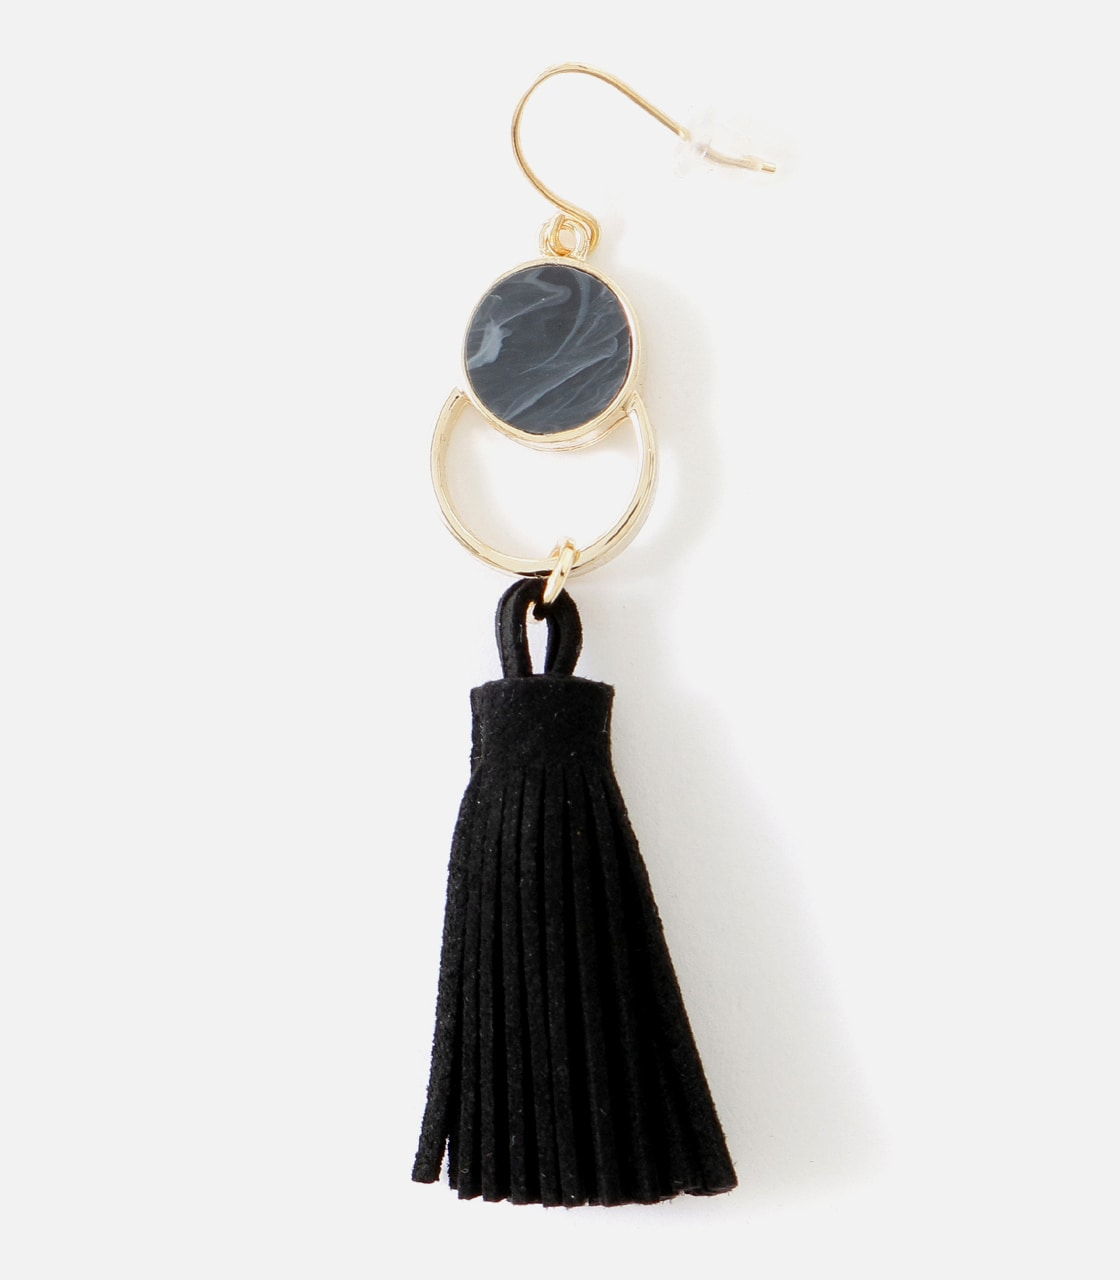 【AZUL BY MOUSSY】フェイクスエードタッセルフックピアス 詳細画像 BLK 2